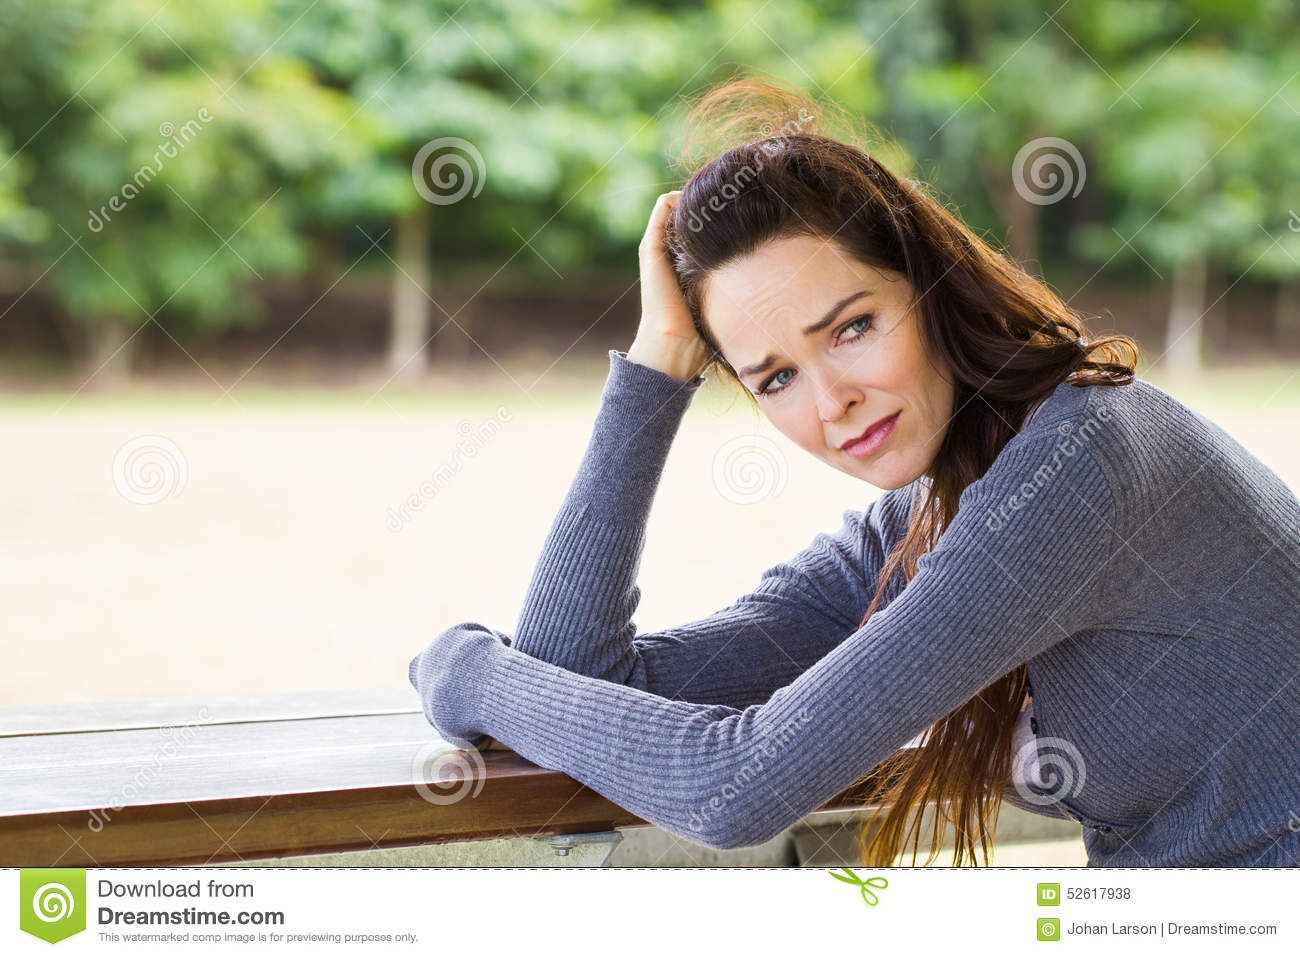 Sad, upset and worried woman sitting outdoors